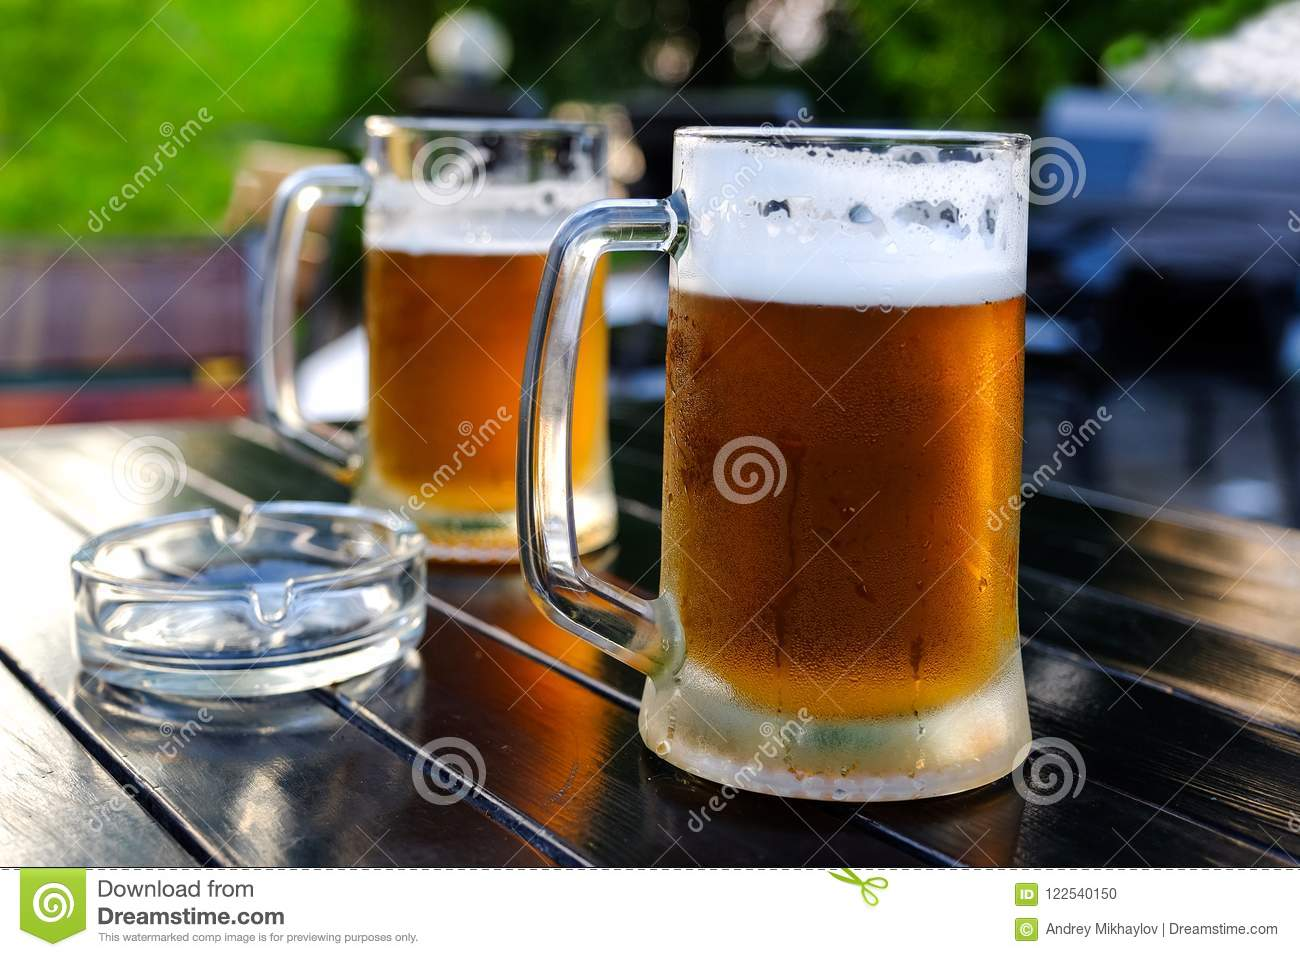 Beer in a glass glass glass, bubbles rise. On the background of green foliage glass with Golden drops.